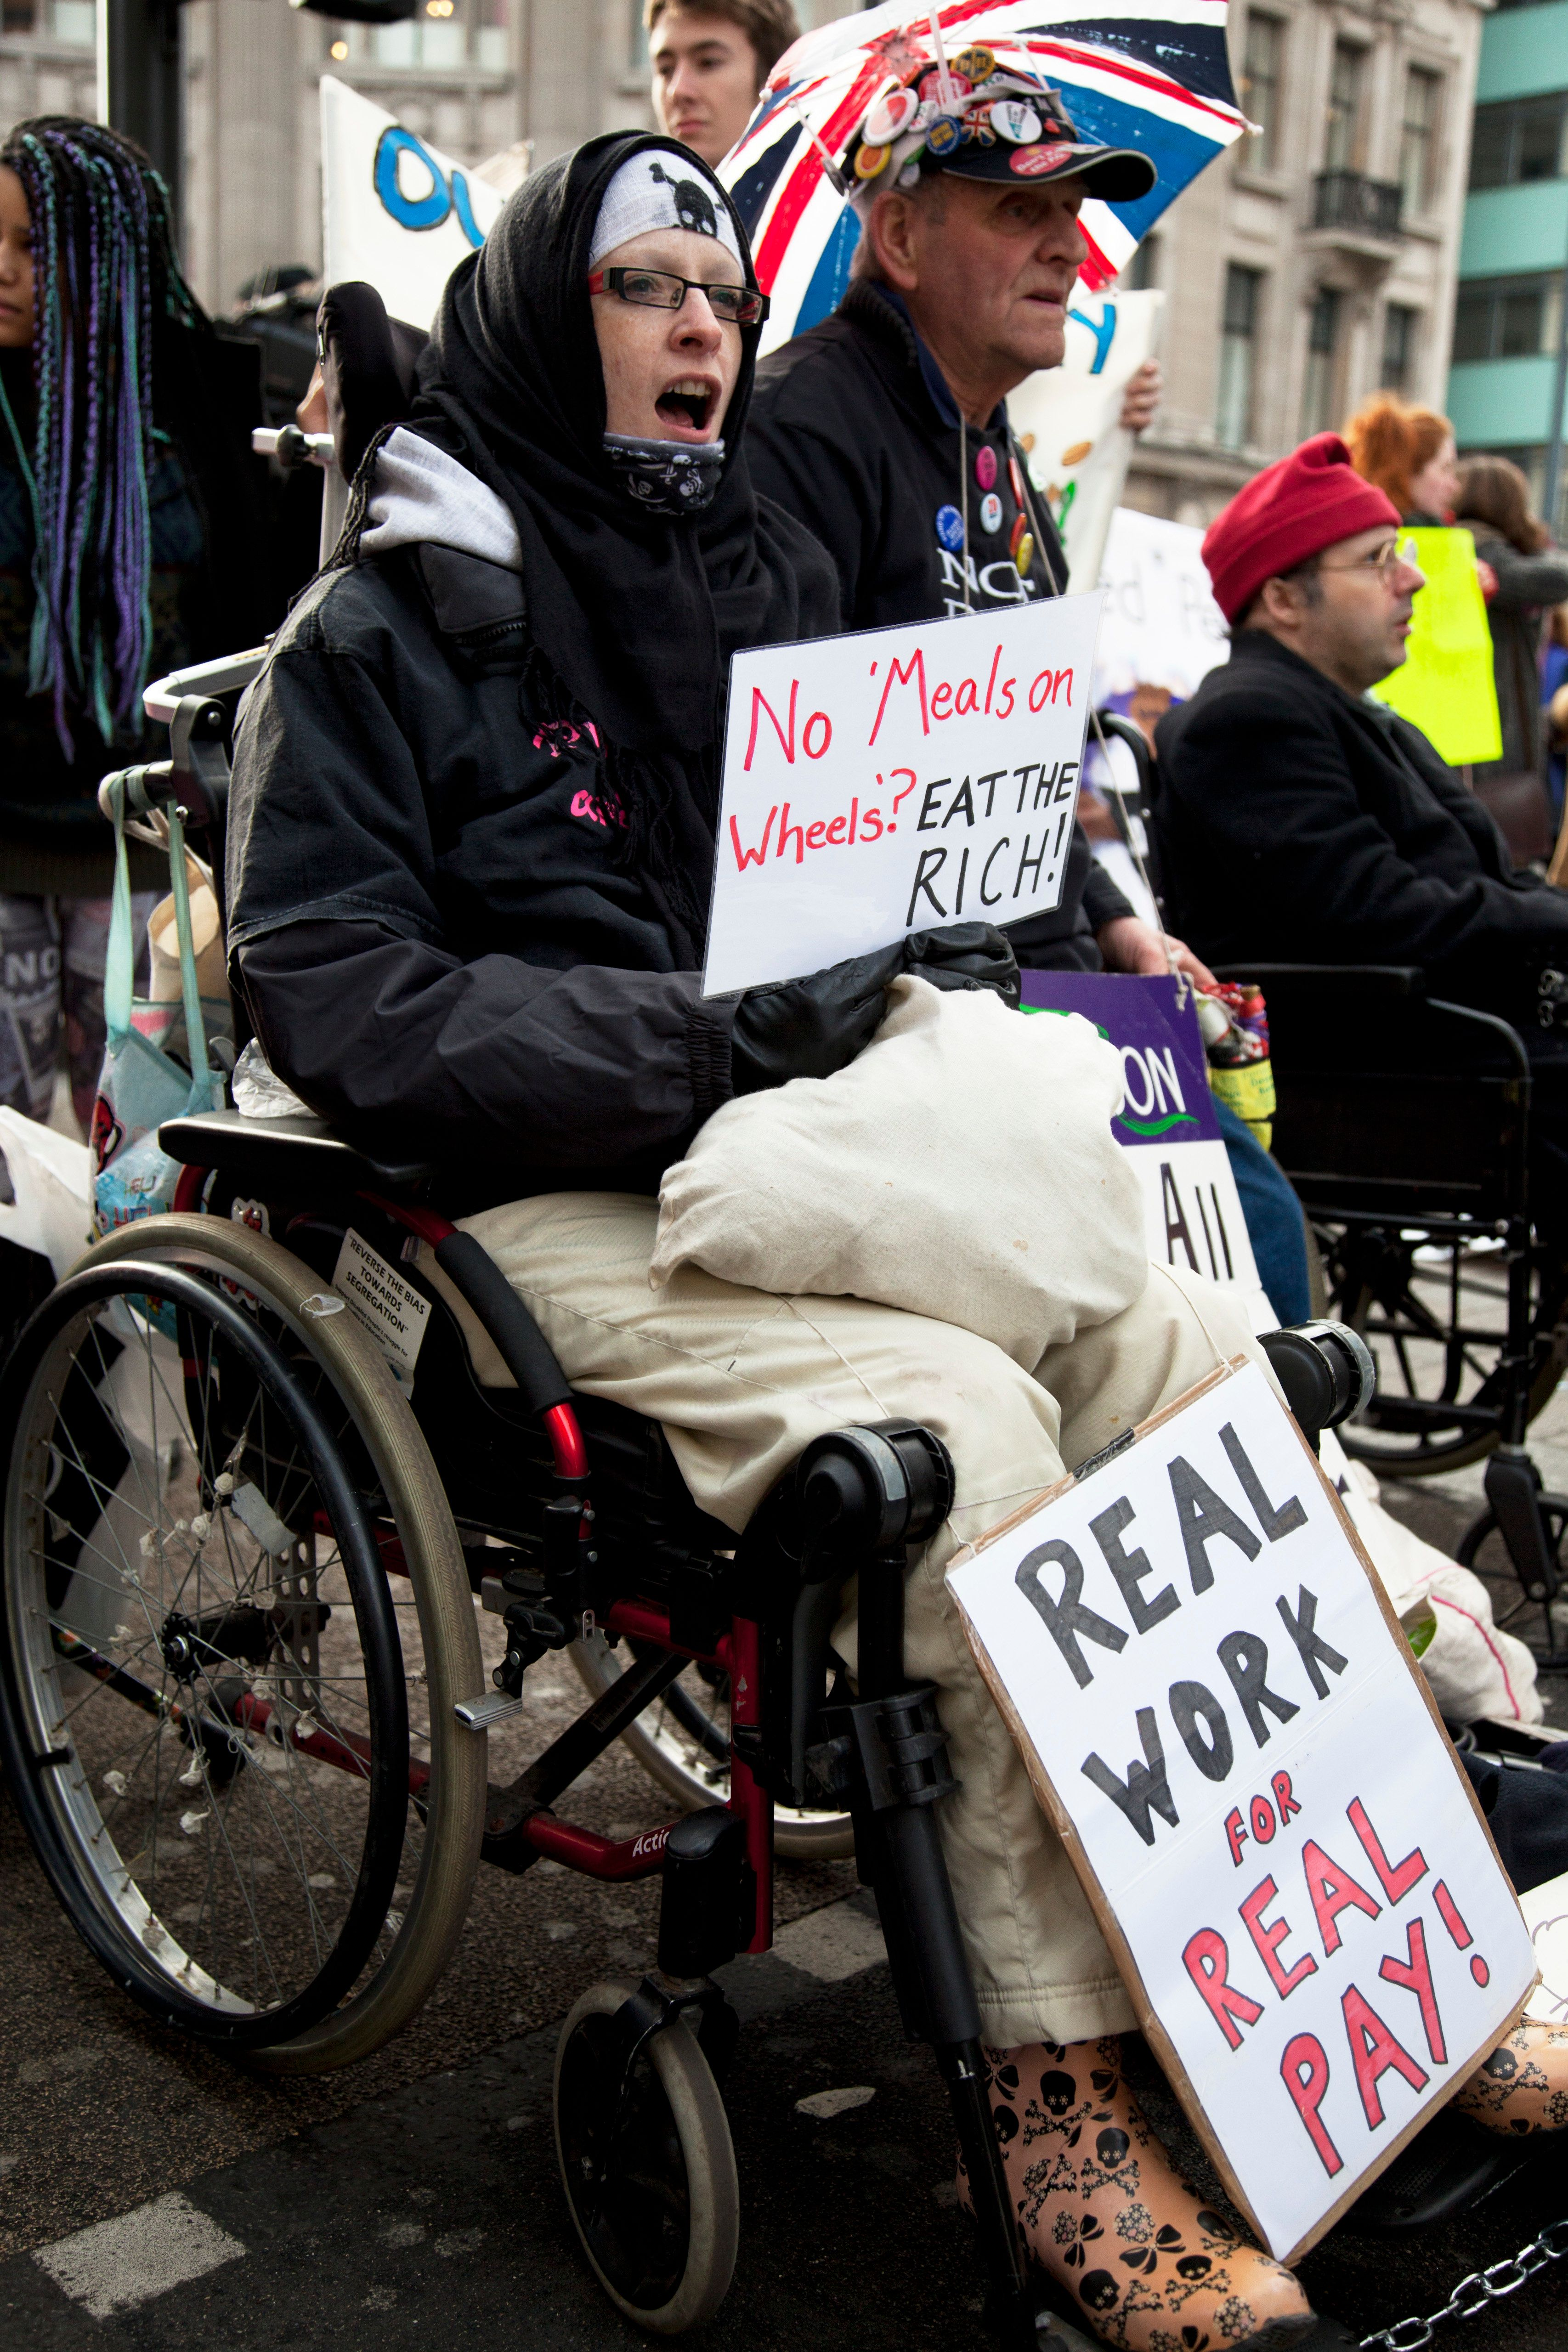 Disabled people in Britain find themselves increasingly excluded from society, a new report finds.